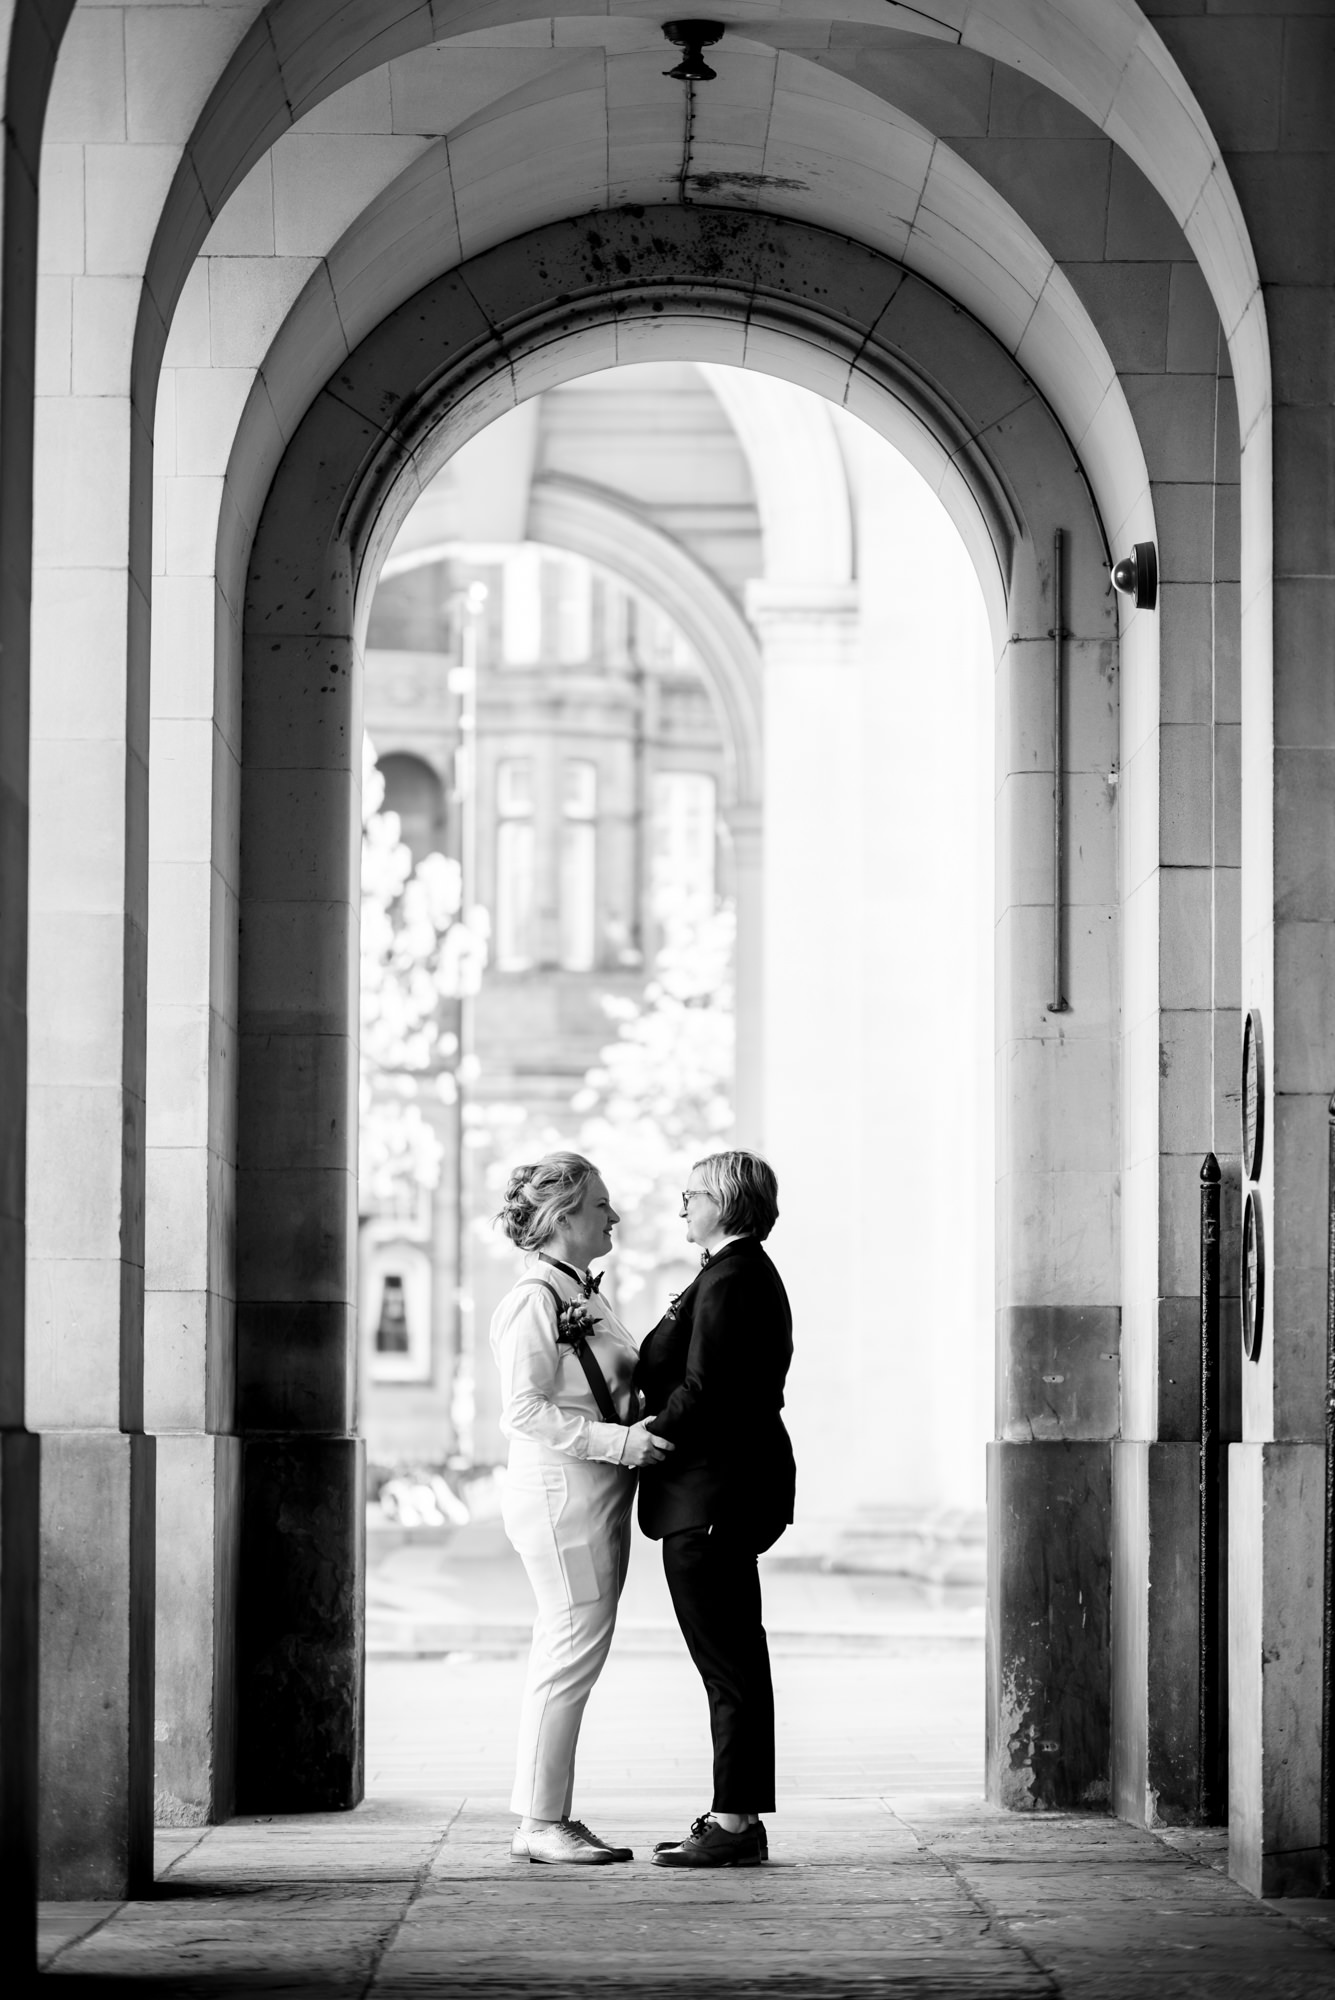 Bridal portraits under Manchester Town Hall's stone arches